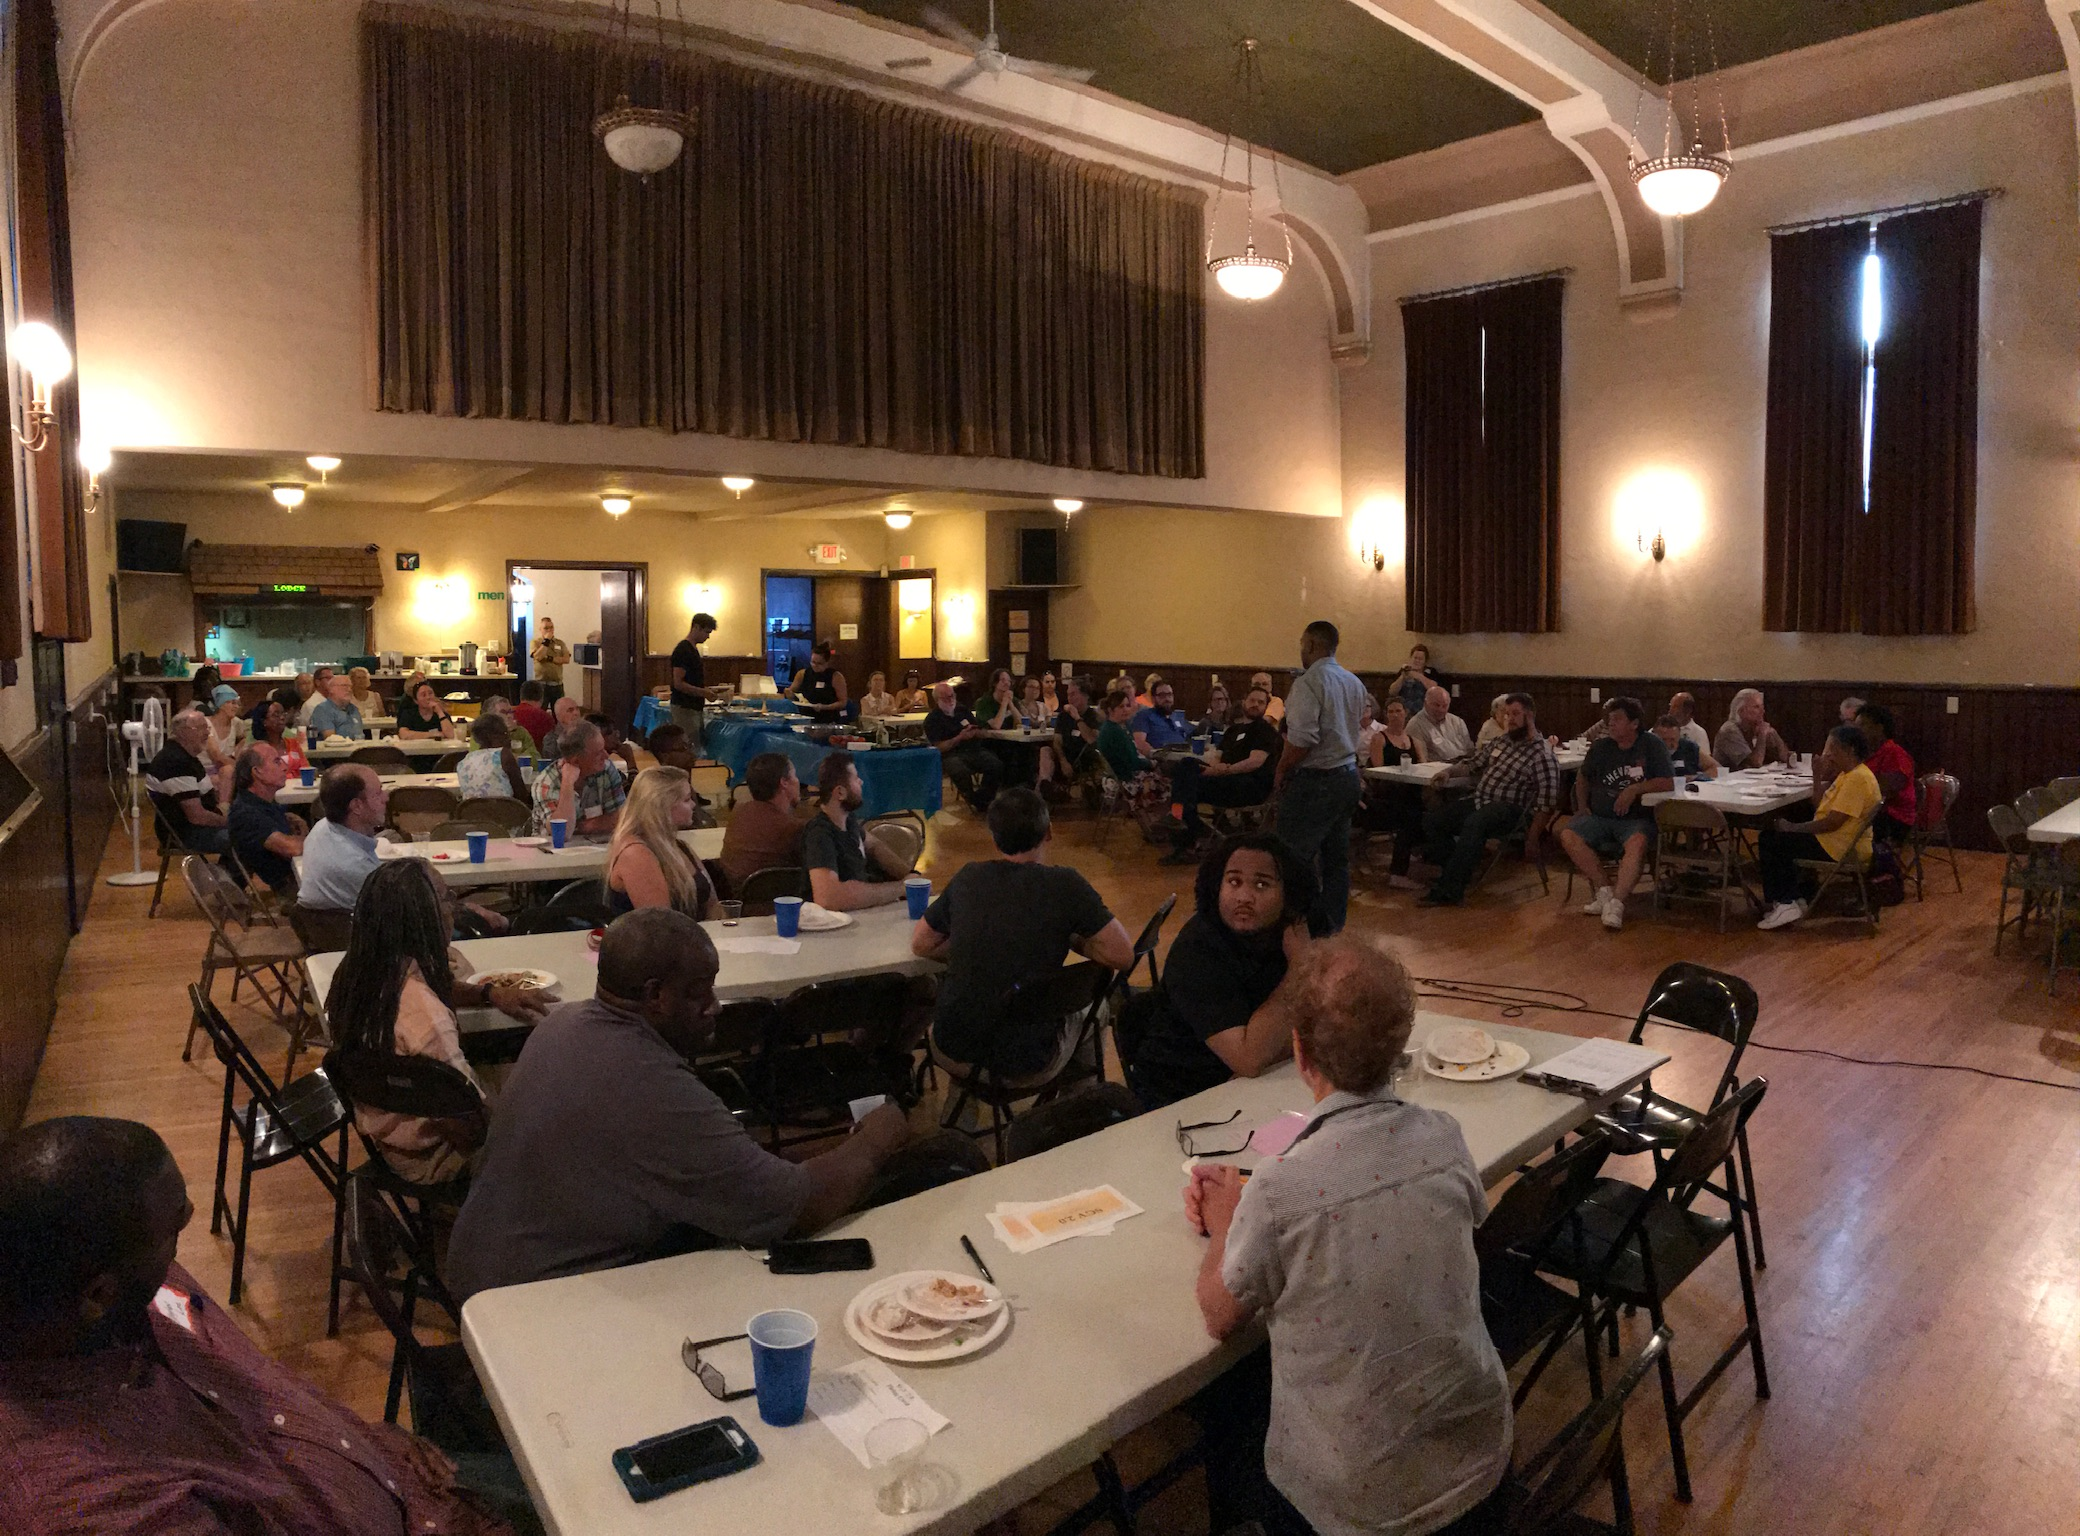 Asset-Mapping - Know Your Neighbor.The next step began with a town hall style community gathering where residents were invited to come together to learn about SGV 2.0. Attendees were engaged in looking ahead and envisioning what would make SGV a great neighborhood.Read More.